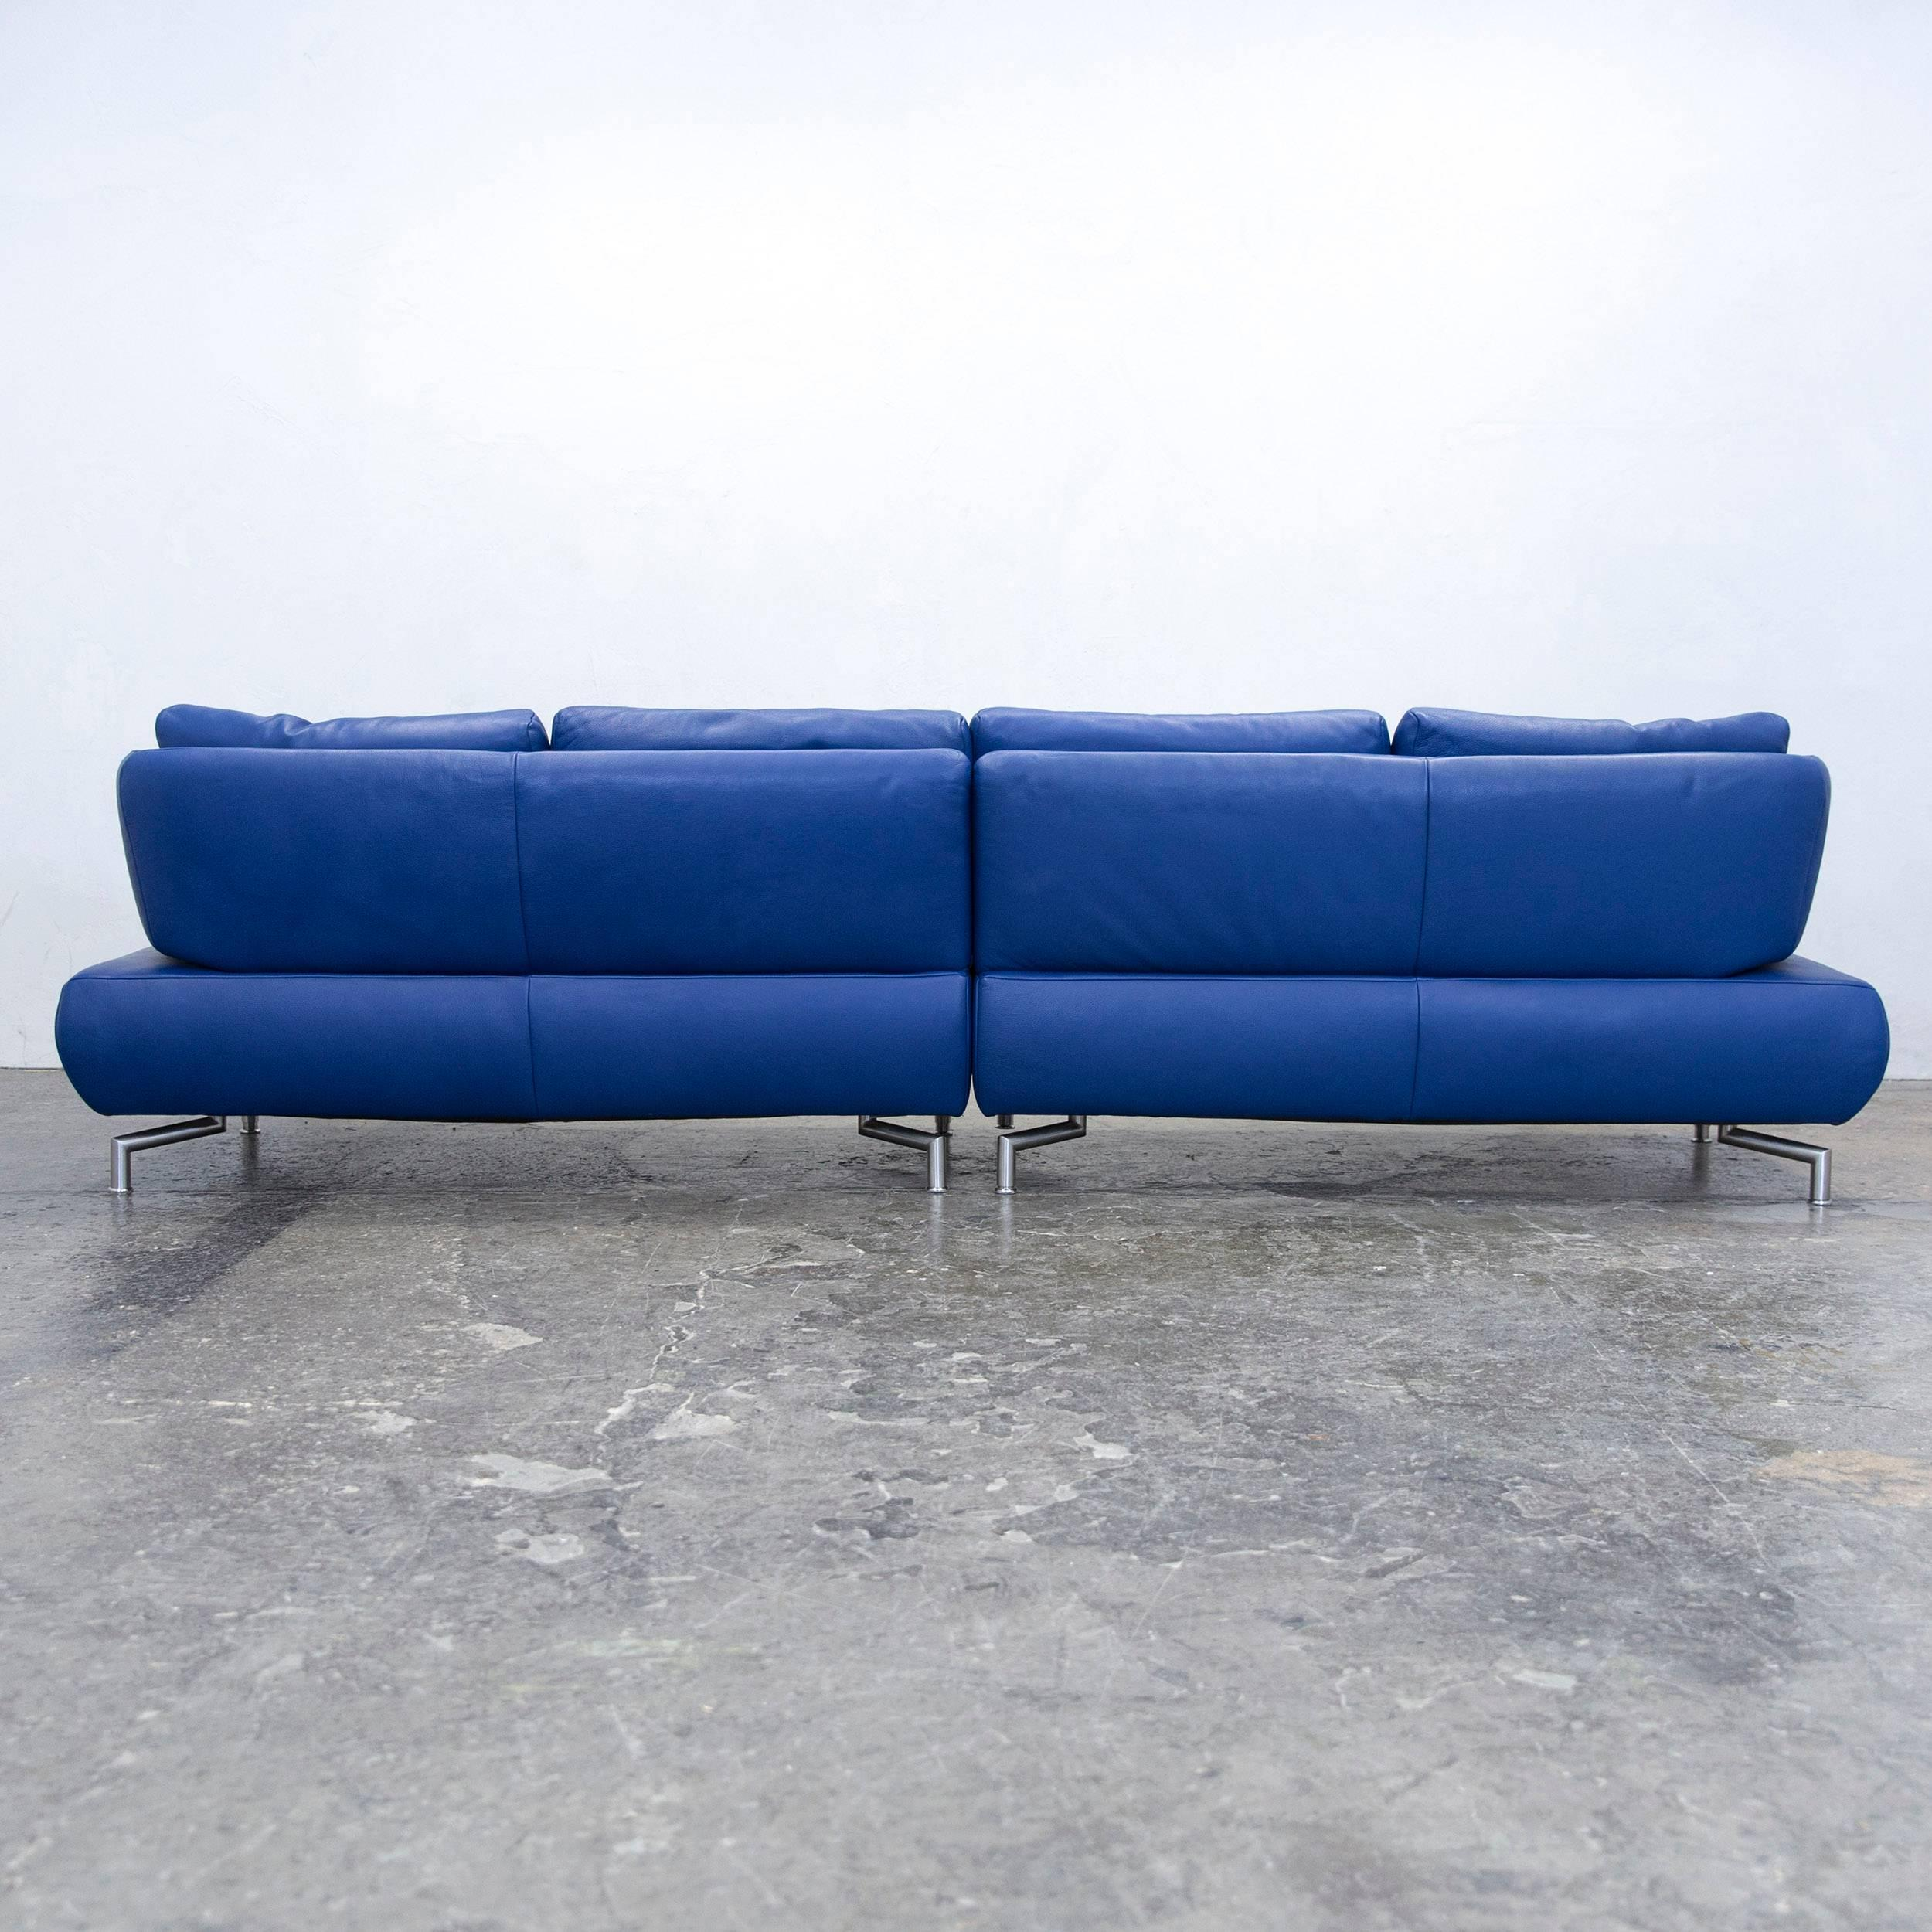 Koinor Designer Sofa Leather Blue Four Seat Couch Function Modern at